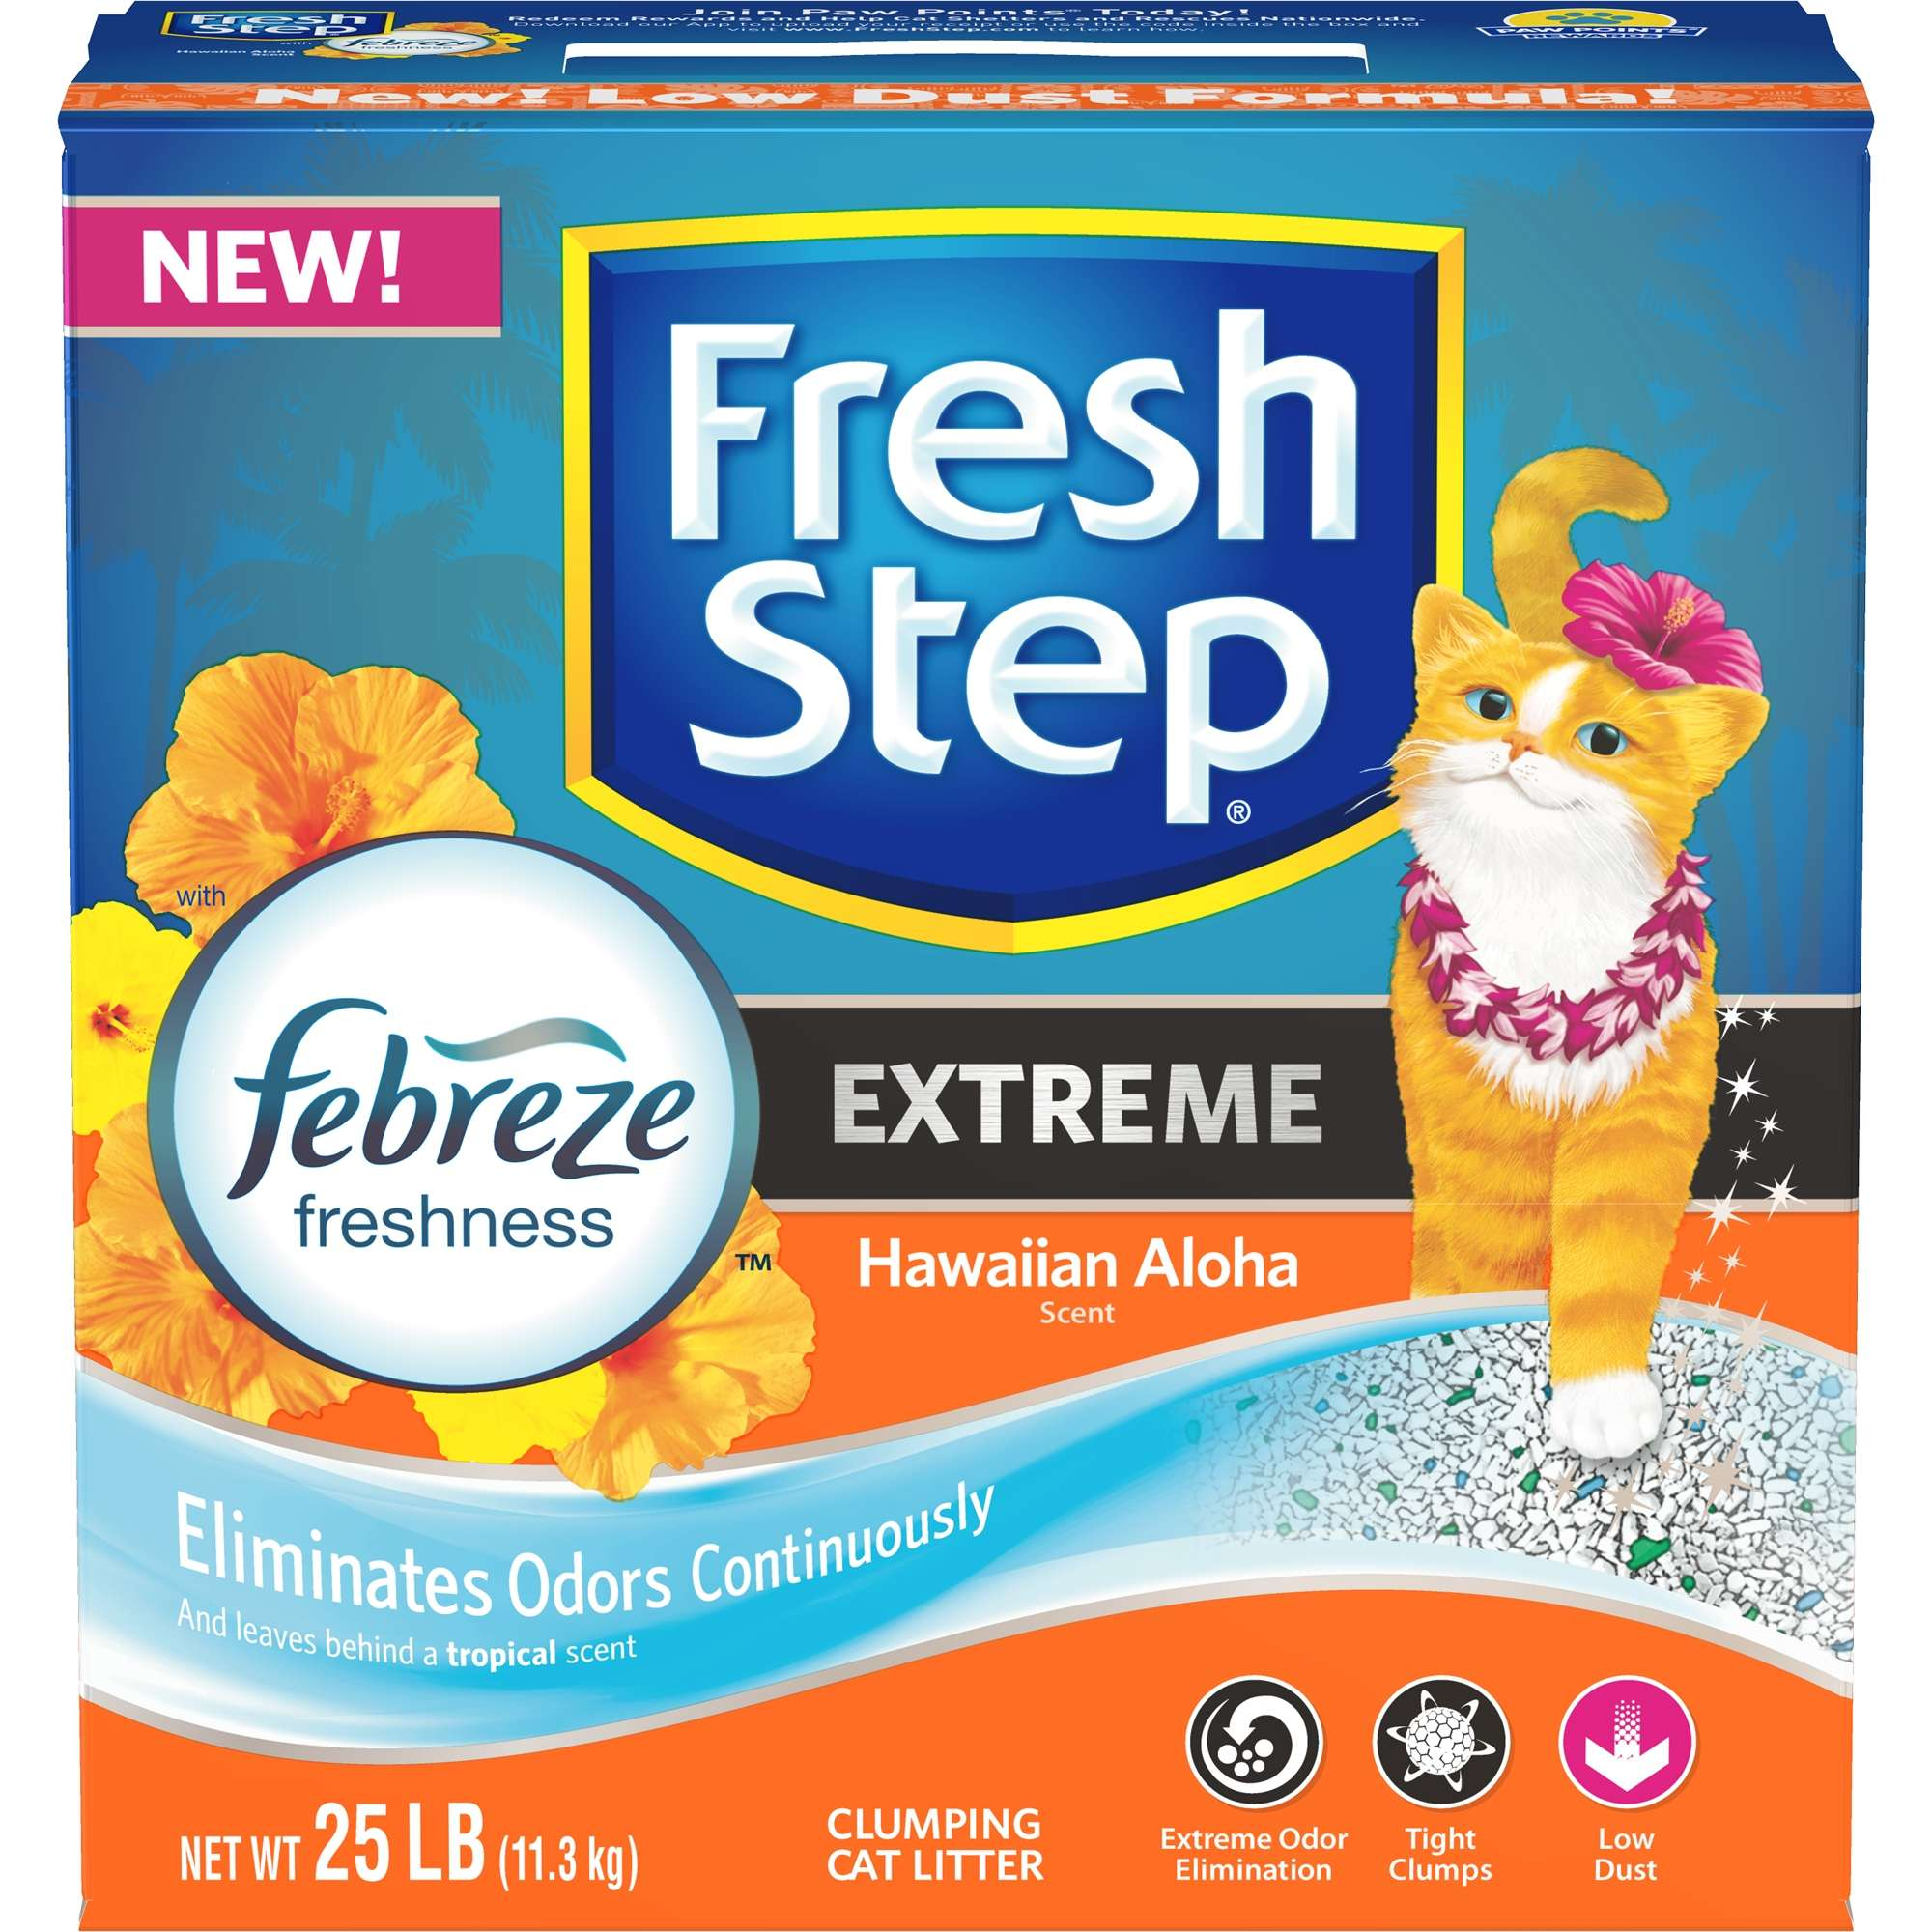 Fresh Step Extreme with Febreze Freshness Hawaiian Aloha Clumping Cat Litter, 25 Lb.